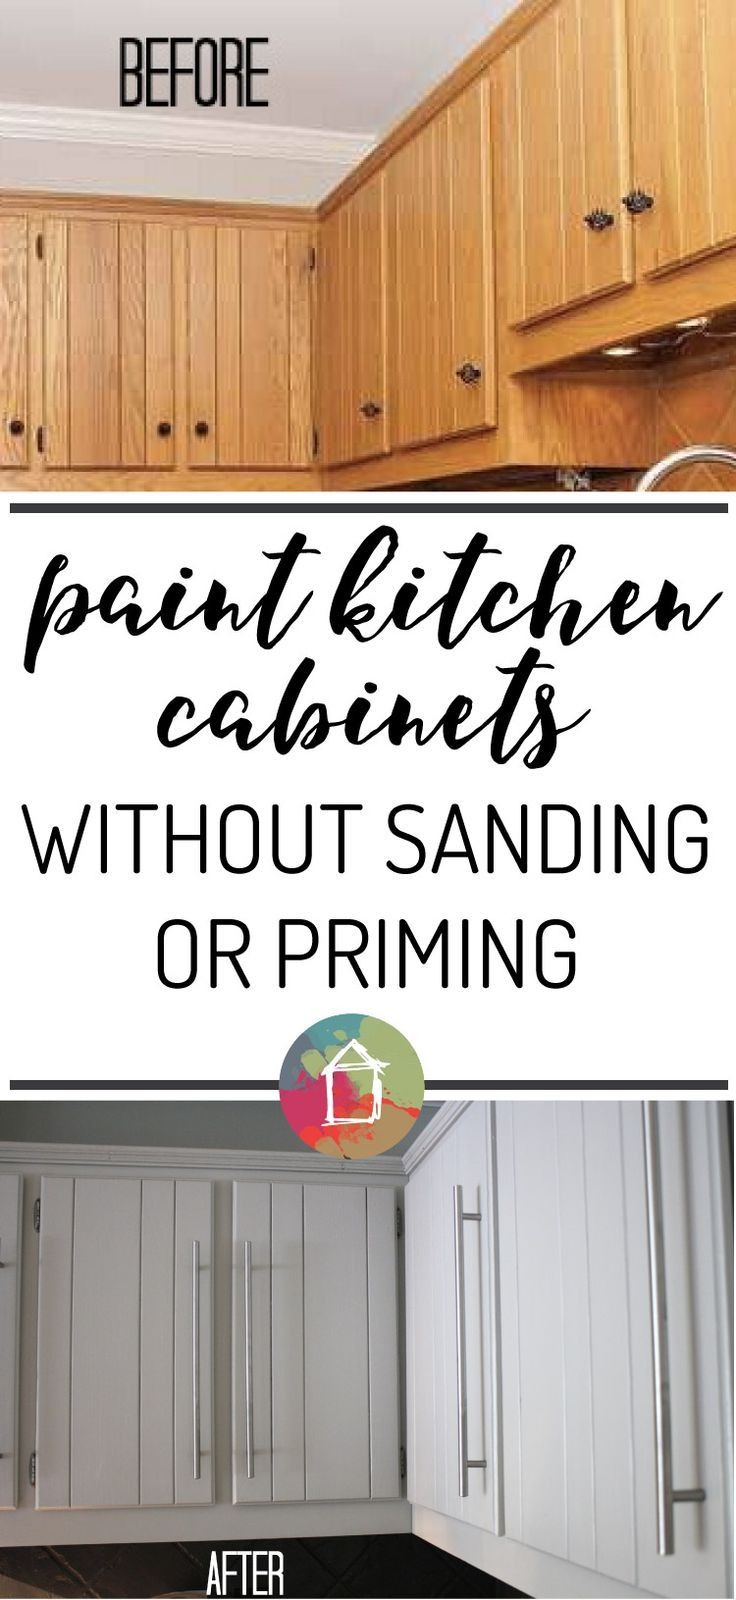 dads house painting kitchen cabinets how to paint kitchen cabinets. Black Bedroom Furniture Sets. Home Design Ideas